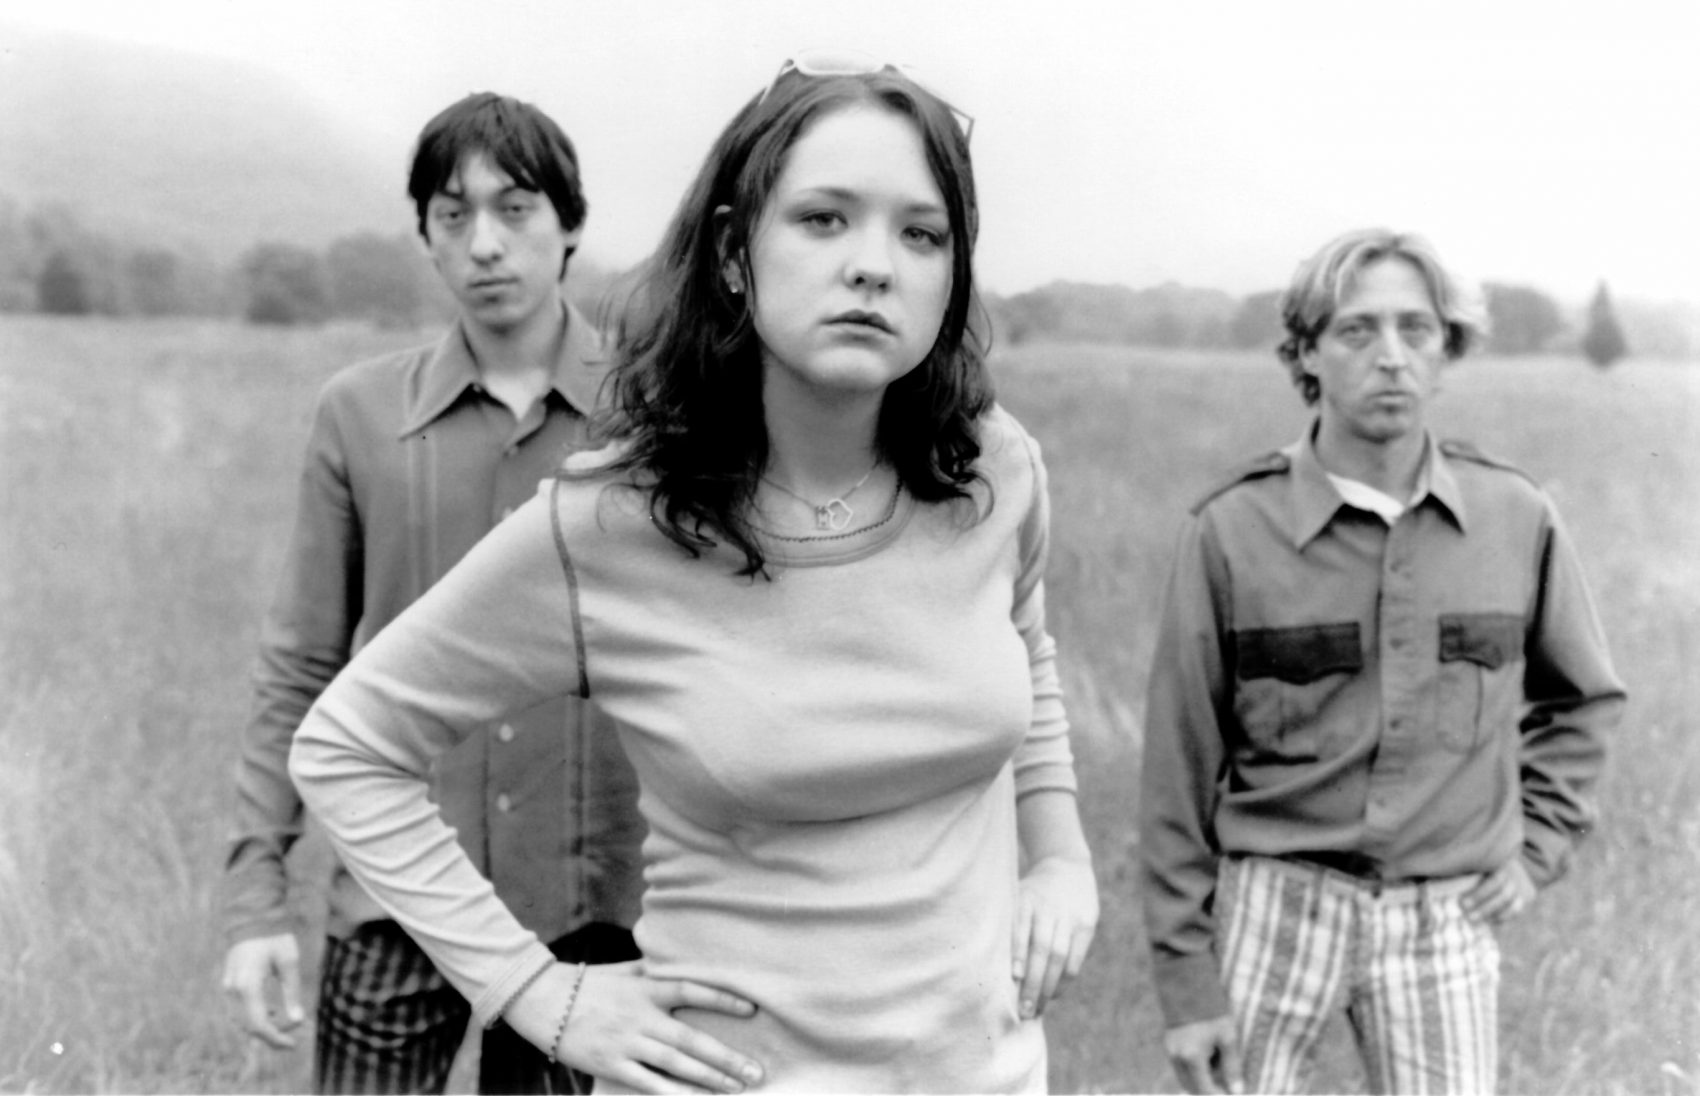 Mary TImony with Ash Bowie and Shawn Devlin of the '90s Boston rock band Helium. (Courtesy James Smolka/Matador Records)